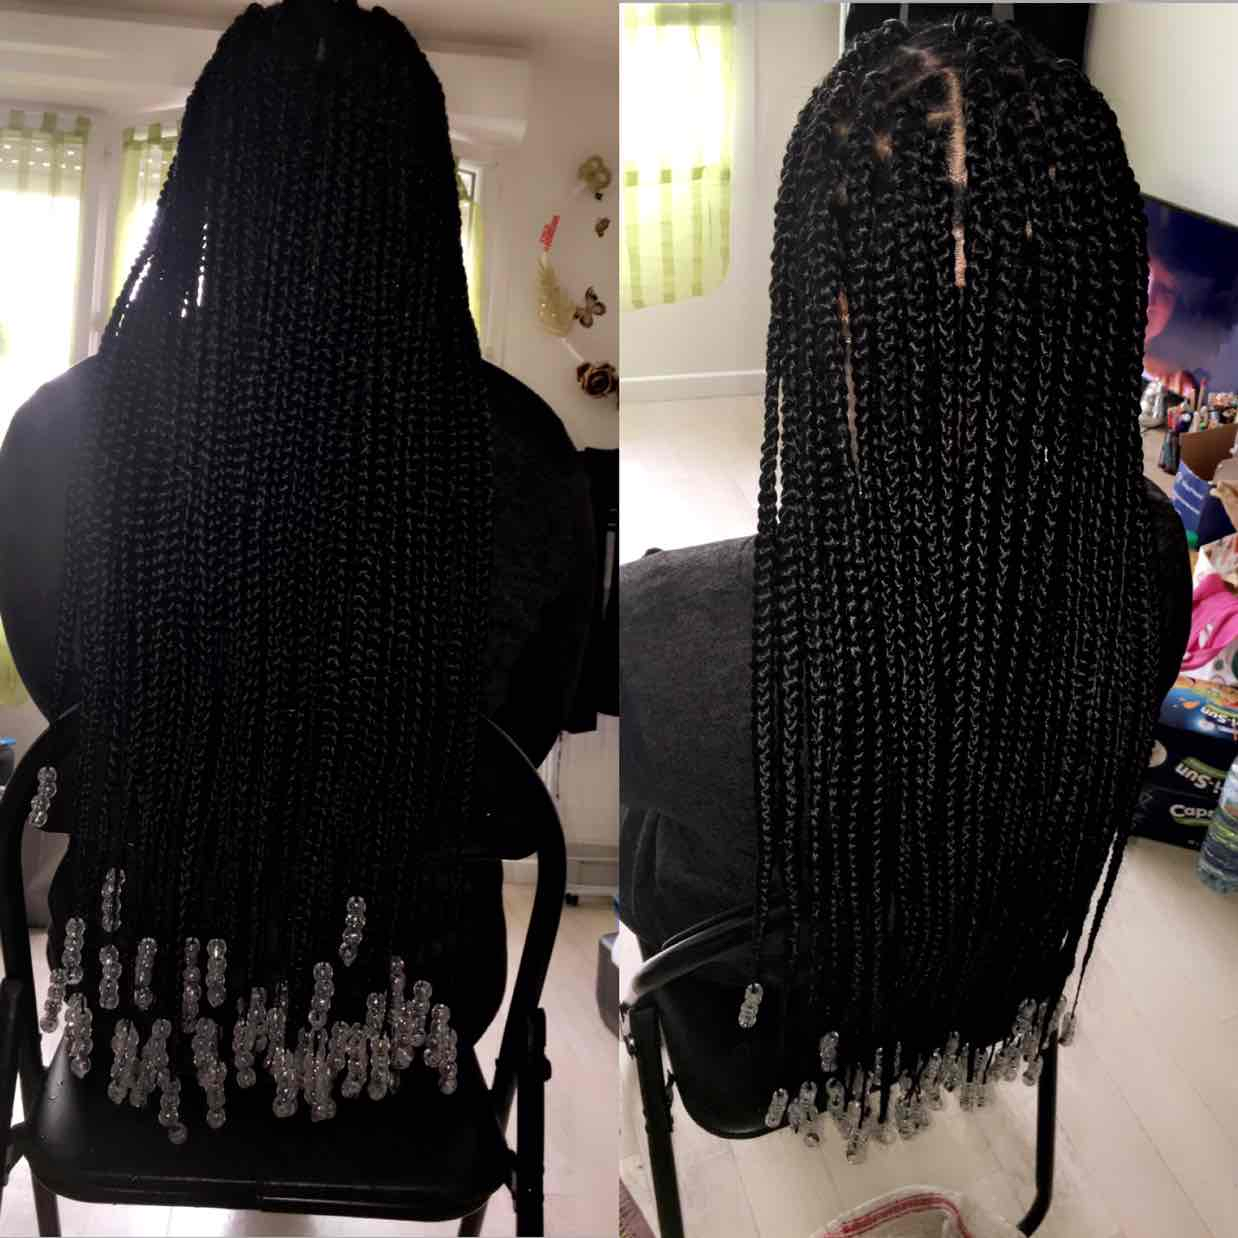 salon de coiffure afro tresse tresses box braids crochet braids vanilles tissages paris 75 77 78 91 92 93 94 95 LKIUTAPB